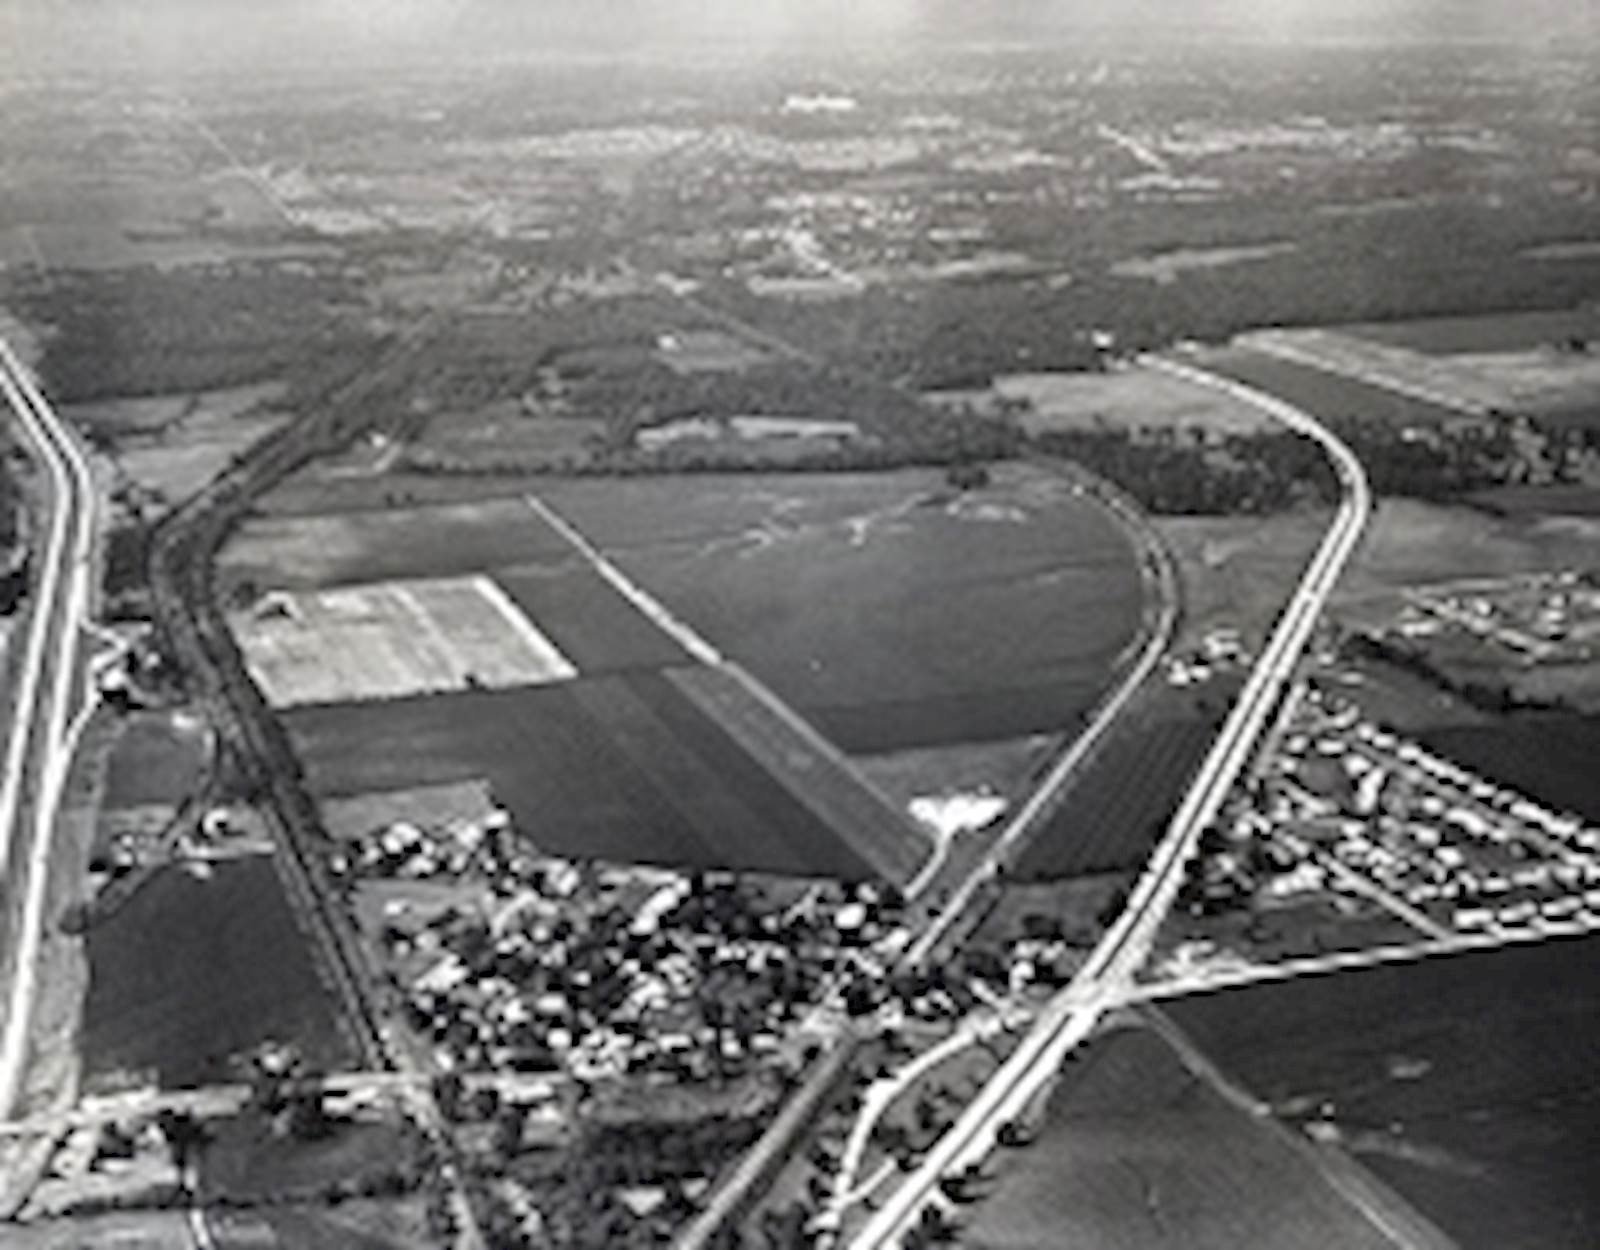 Aerial Photograph of Sherman - Village of Sherman, Illinois - image